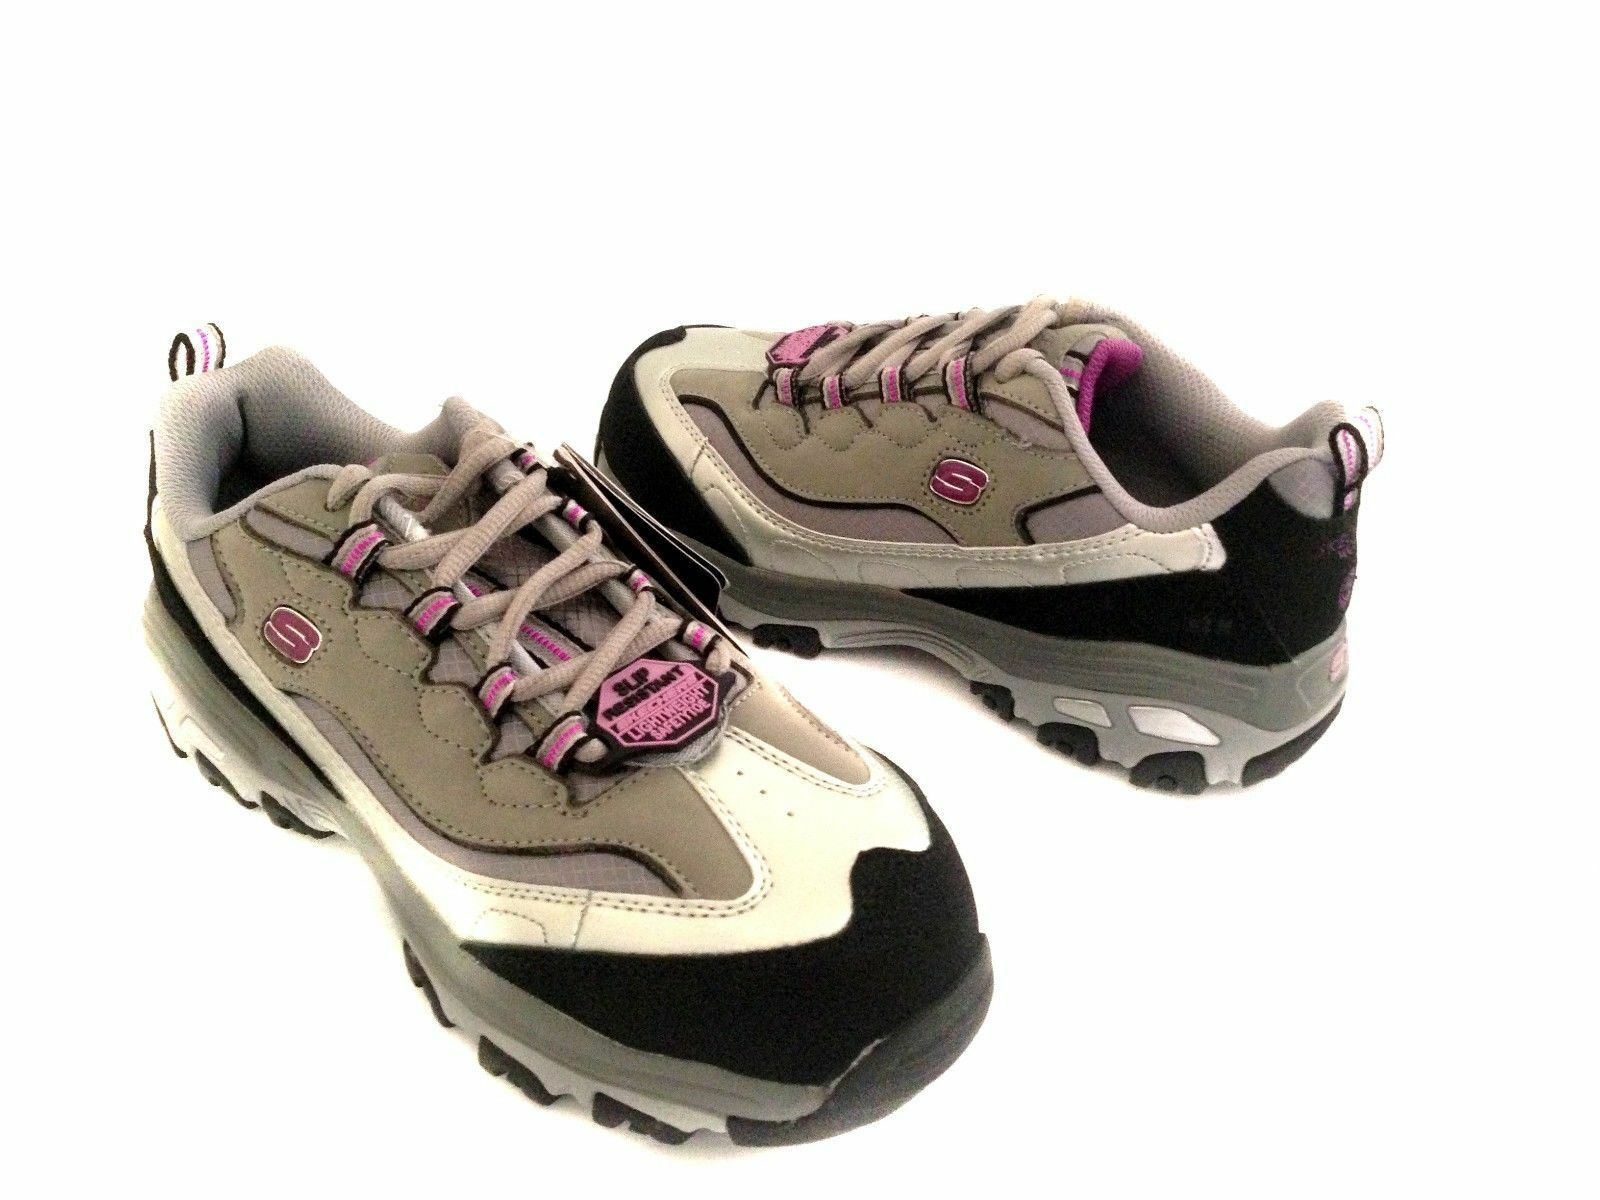 NEW SKECHERS DLITE 76442 PURPLE GRAY EH SAFETY TOE WORK BOOT SHOES 8.5 EW Last